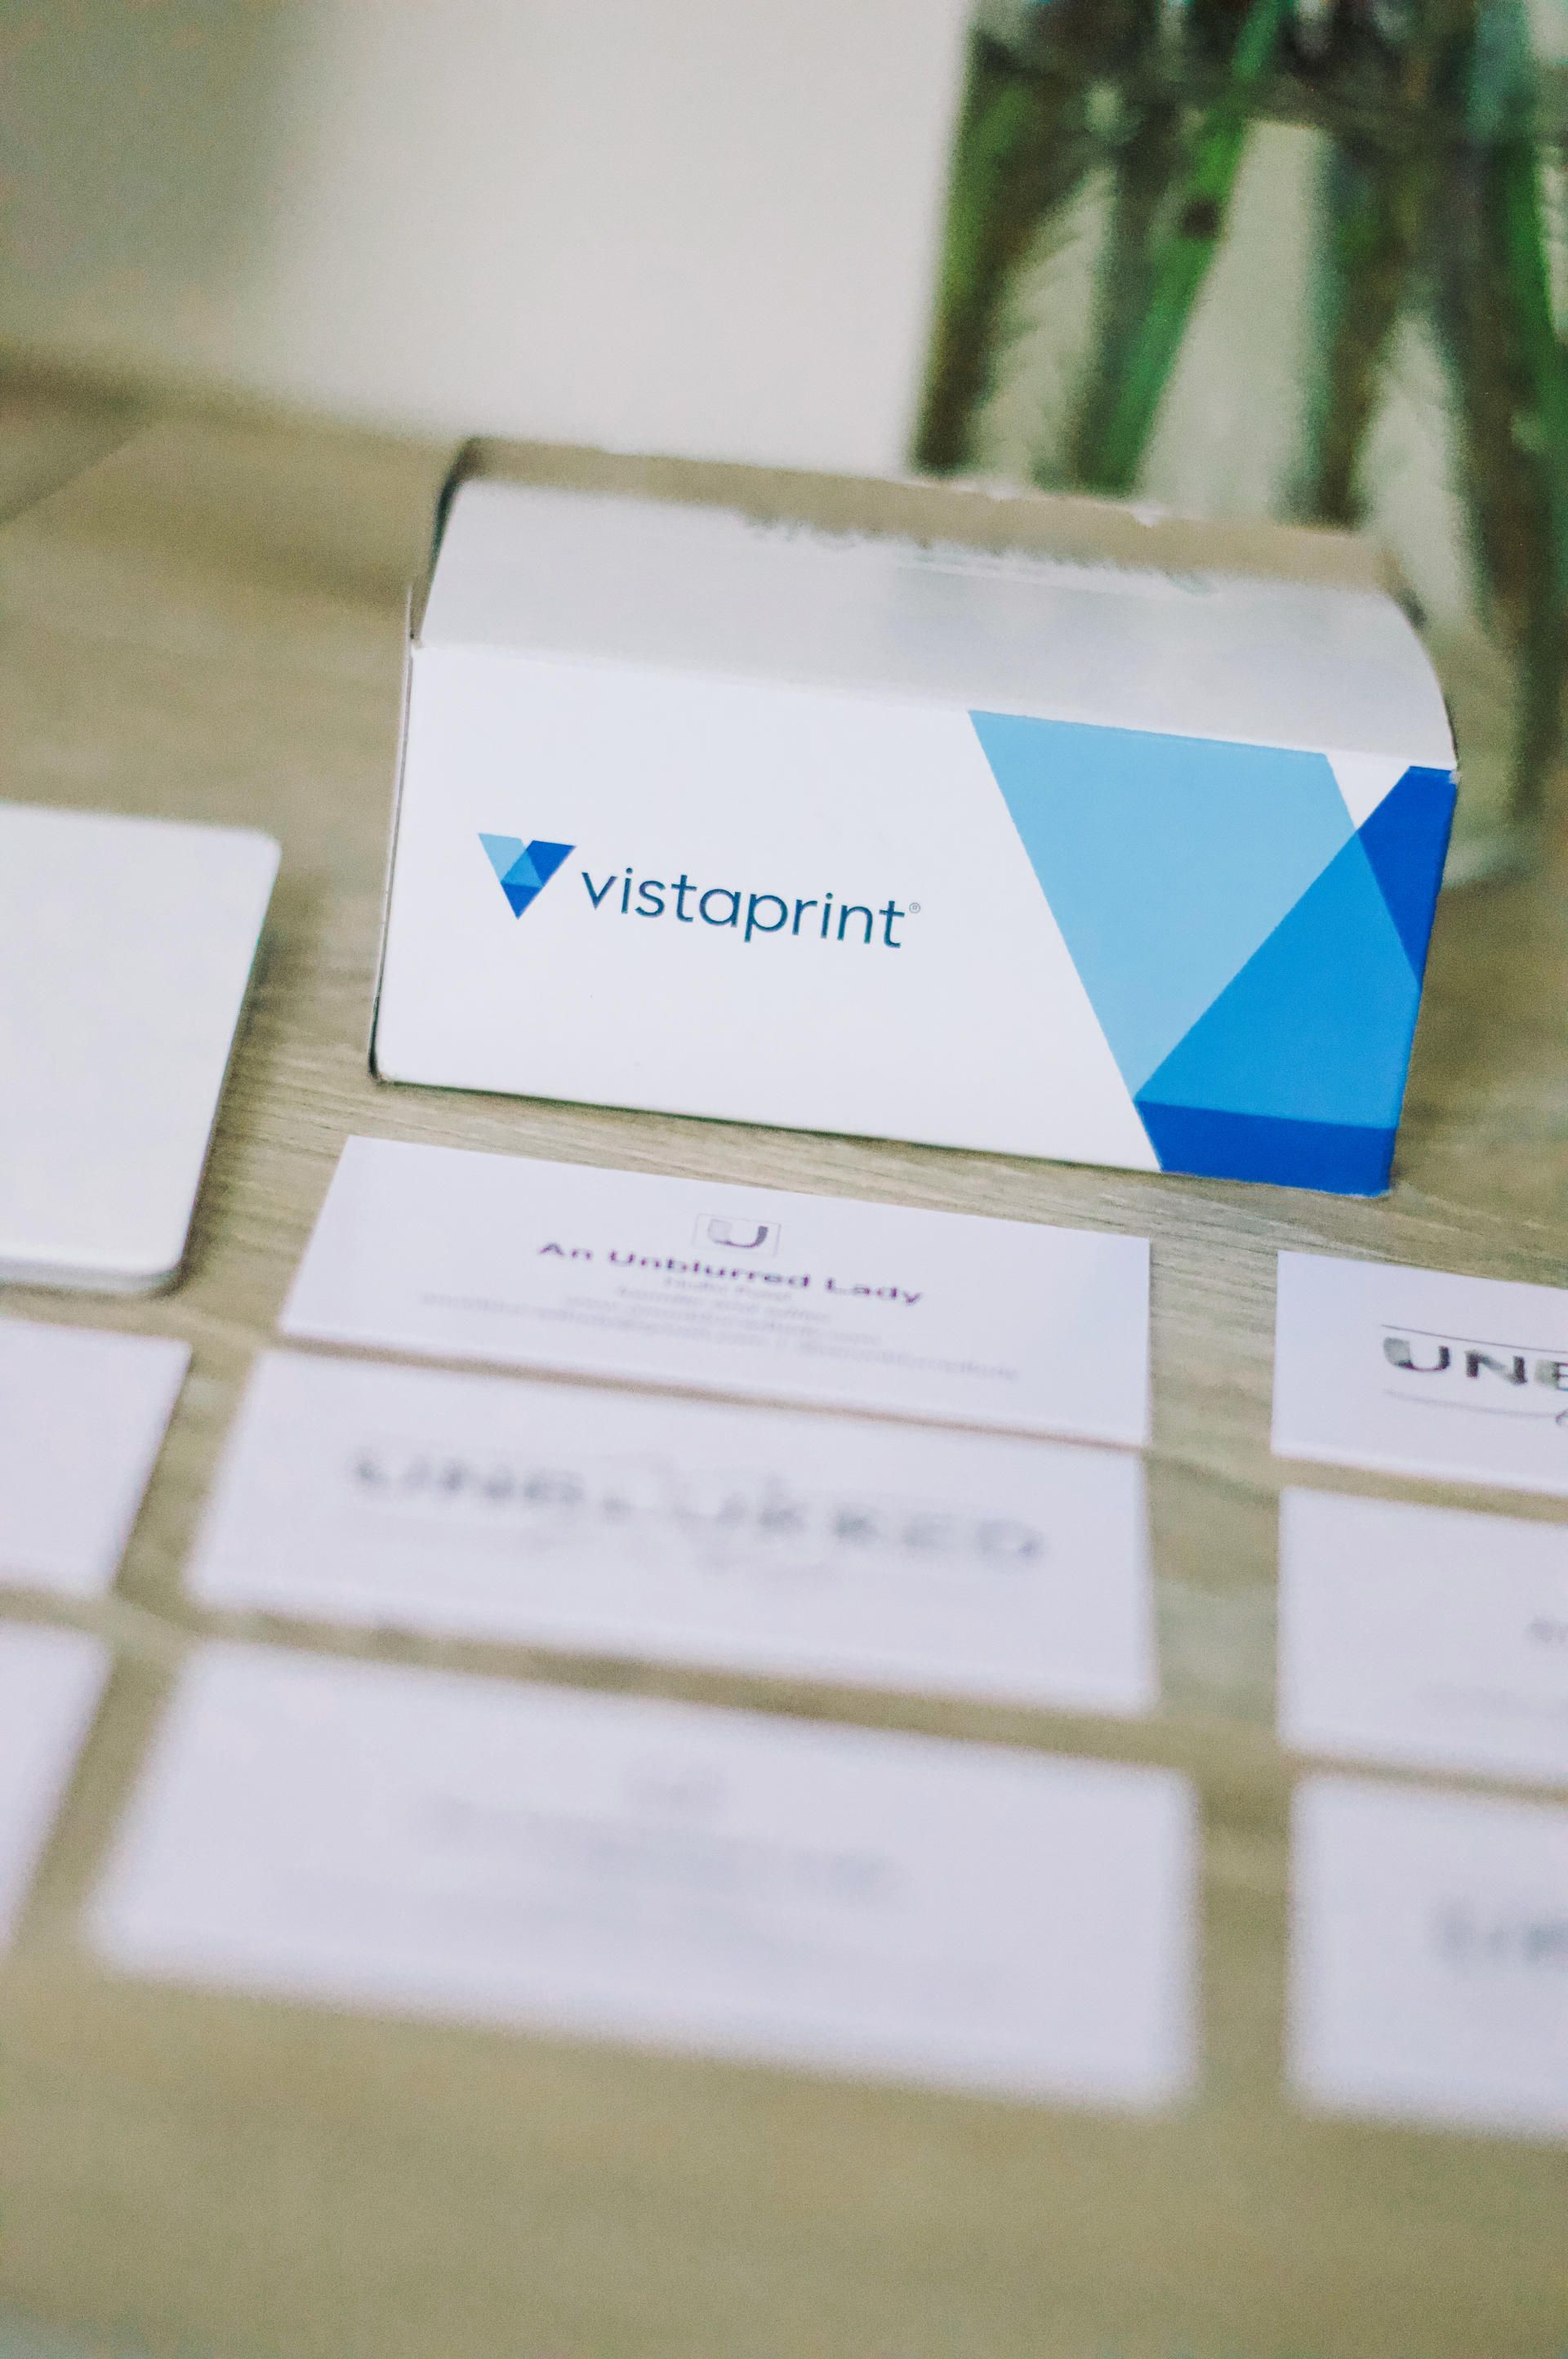 Vistaprint Business Cards Template Psd Inspirational Vistaprint Business Card Templa Sample Business Cards Vistaprint Business Cards Business Card Template Psd